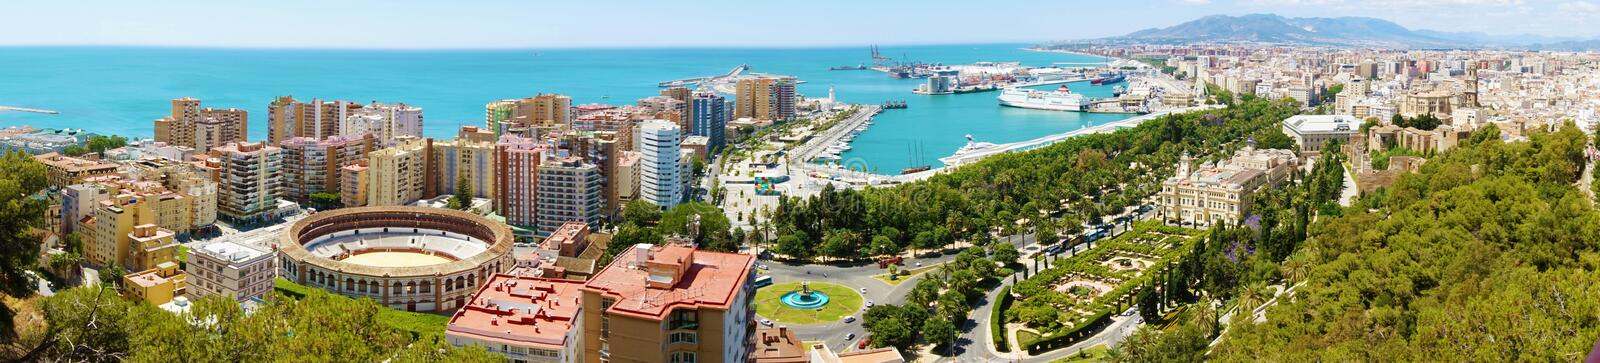 Panoramic view on Malaga City. Cityscape of Malaga with down town center with Cathedral, Mediterranean Sea port harbor stock photography